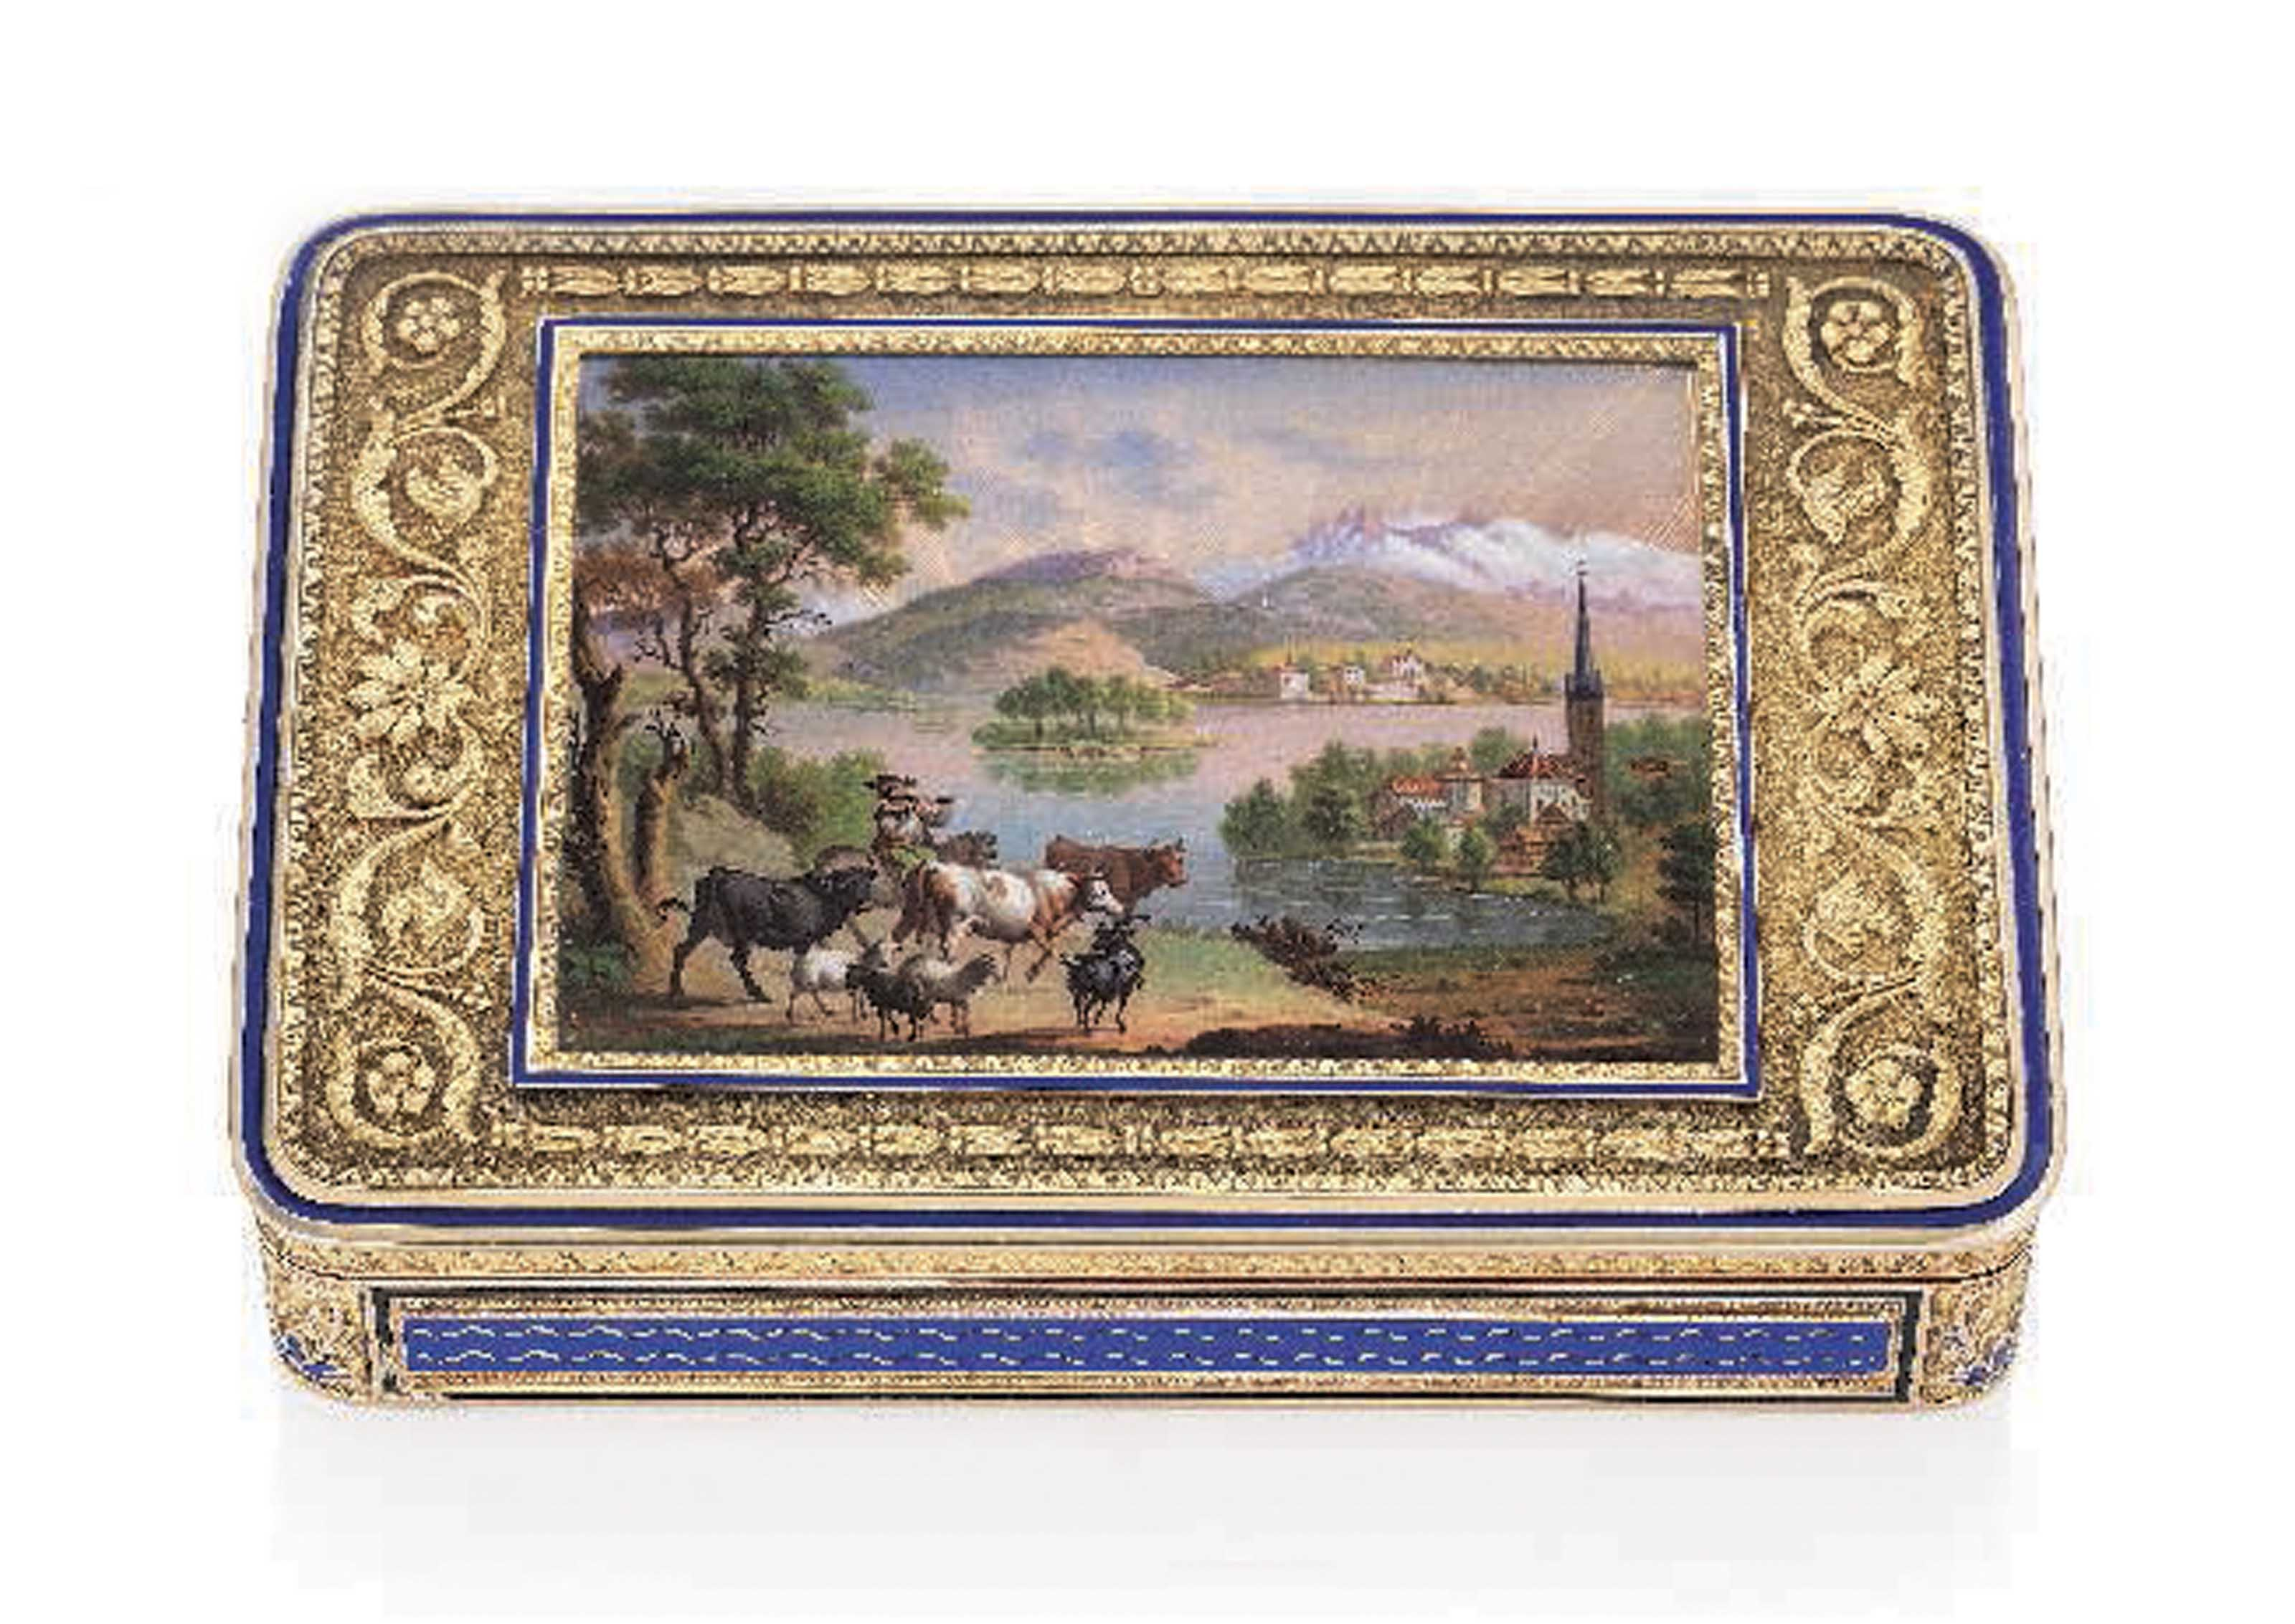 A SWISS ENAMELLED GOLD SNUFF-BOX SET WITH AN ENAMEL MINIATURE